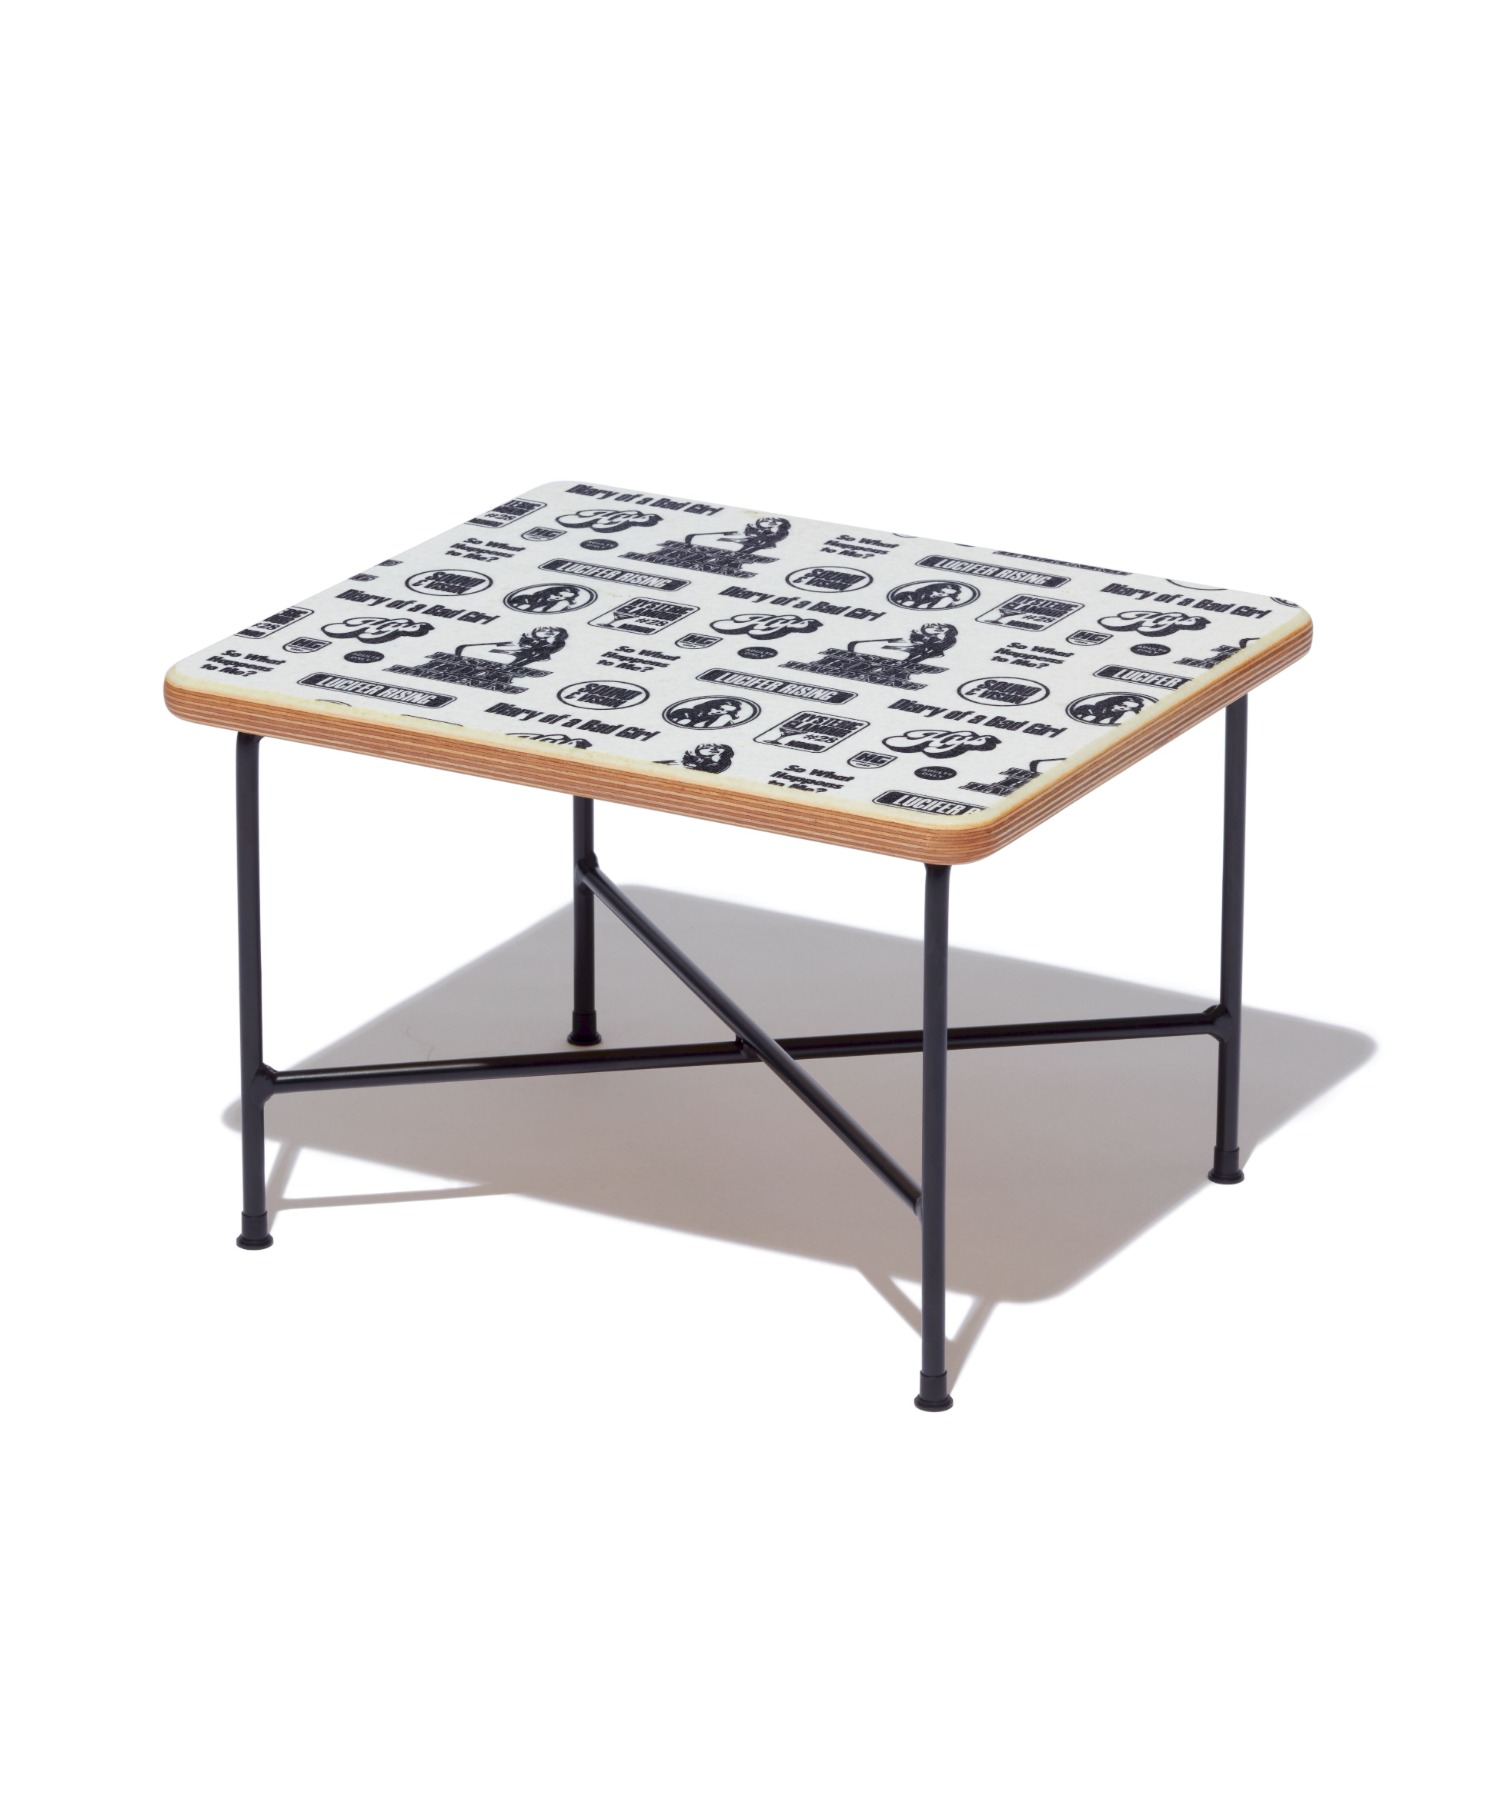 MODERNICA/Aiko Table